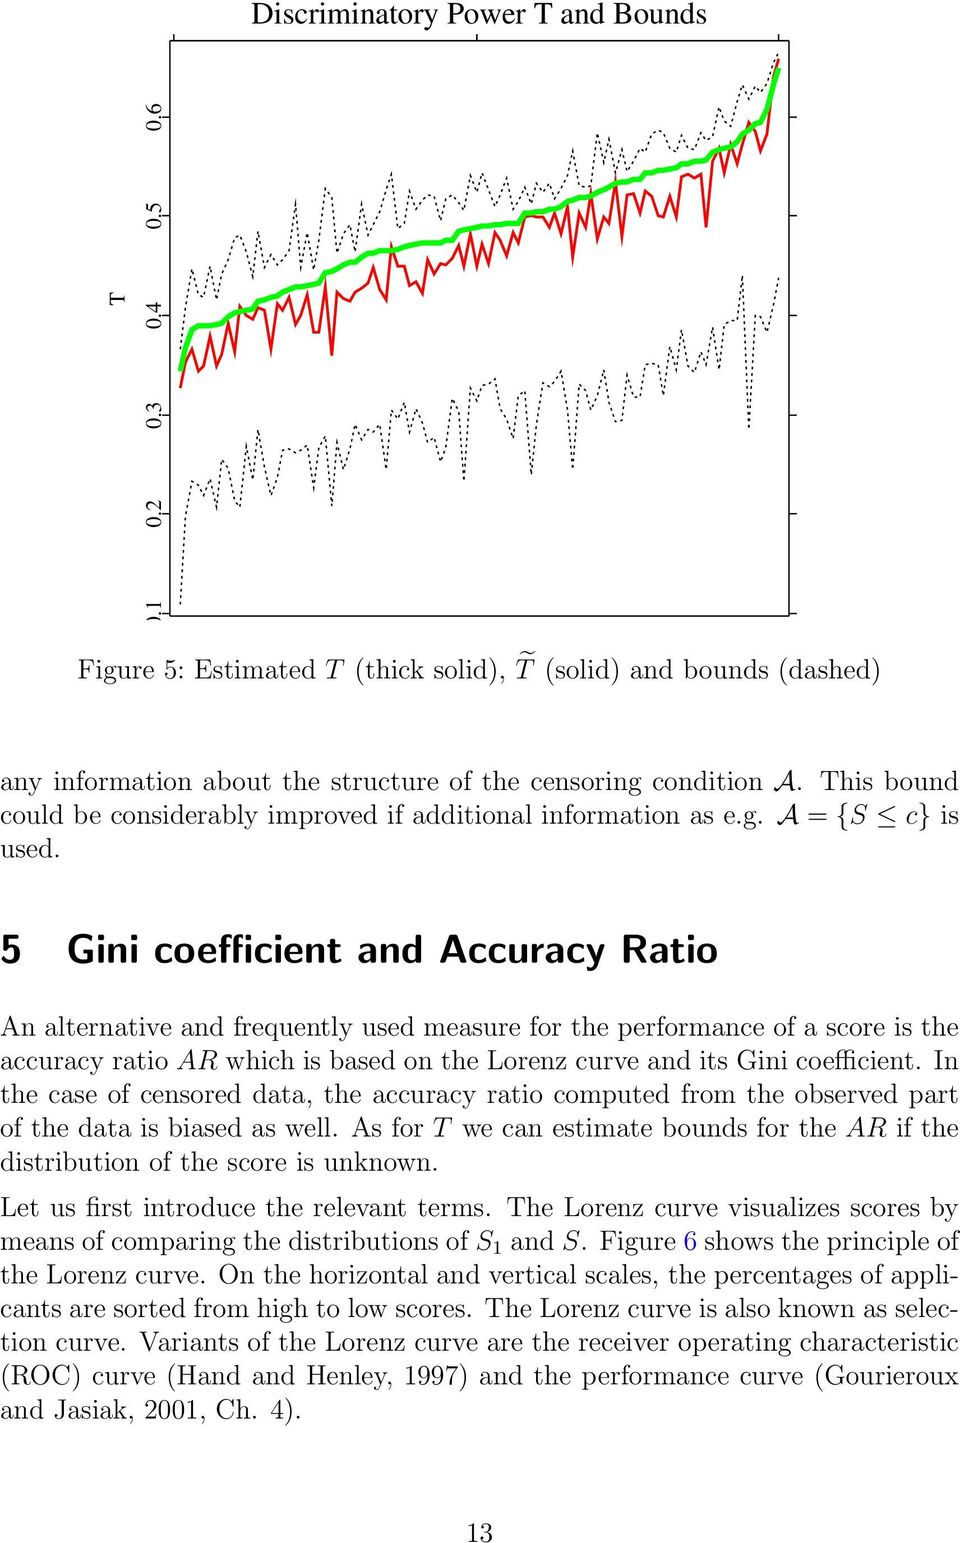 5 Gini coefficient and Accuracy Ratio An alternative and frequently ued meaure for the performance of a core i the accuracy ratio AR which i baed on the Lorenz curve and it Gini coefficient.